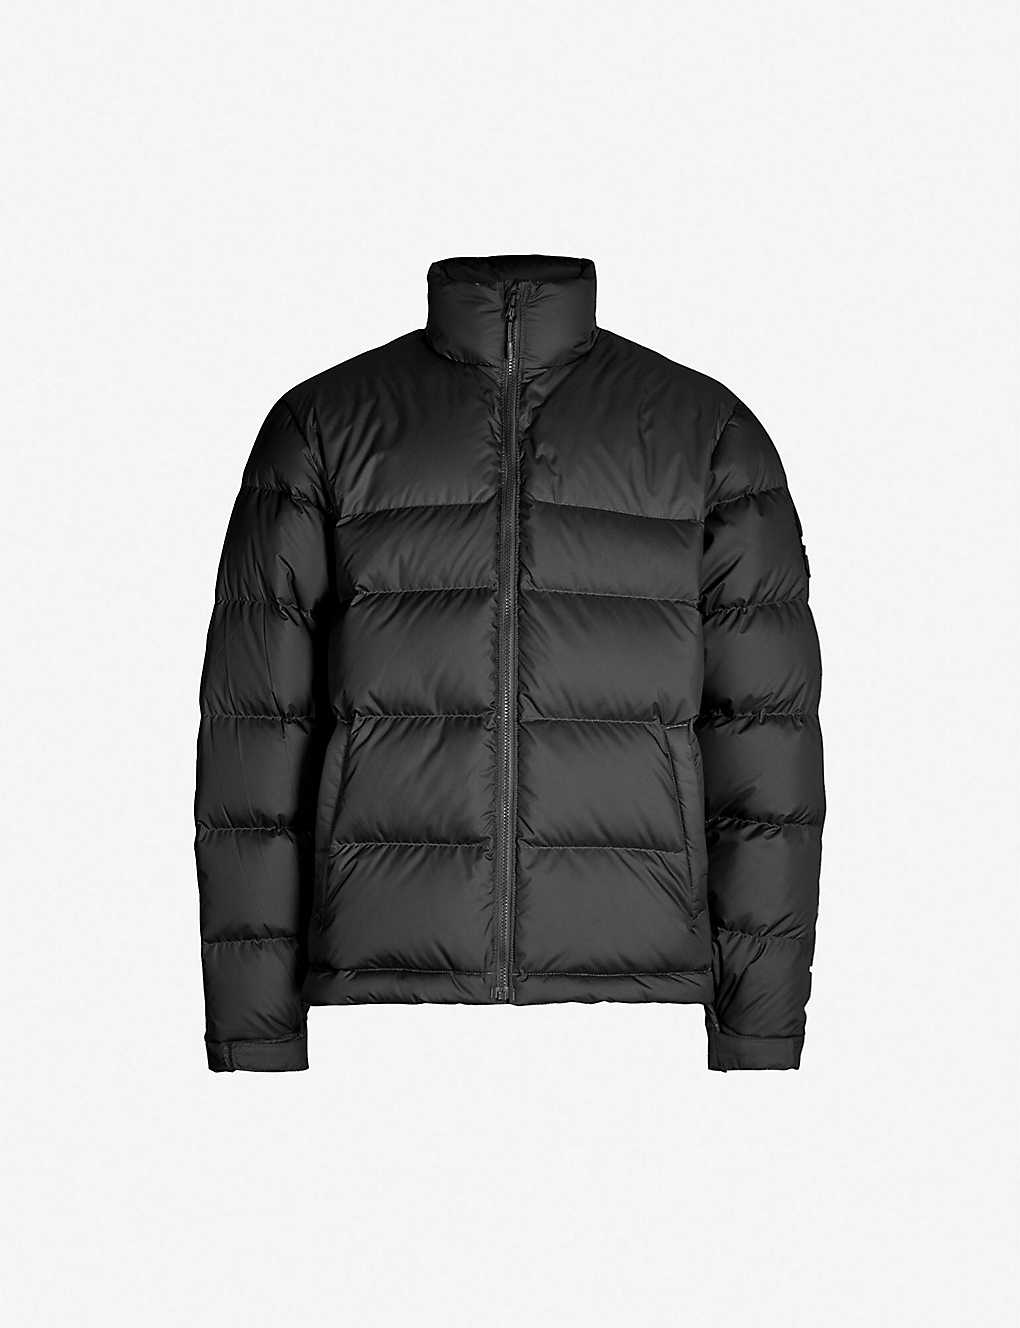 7e74701f9681 THE NORTH FACE - 1992 Nuptse shell and down-blend jacket ...